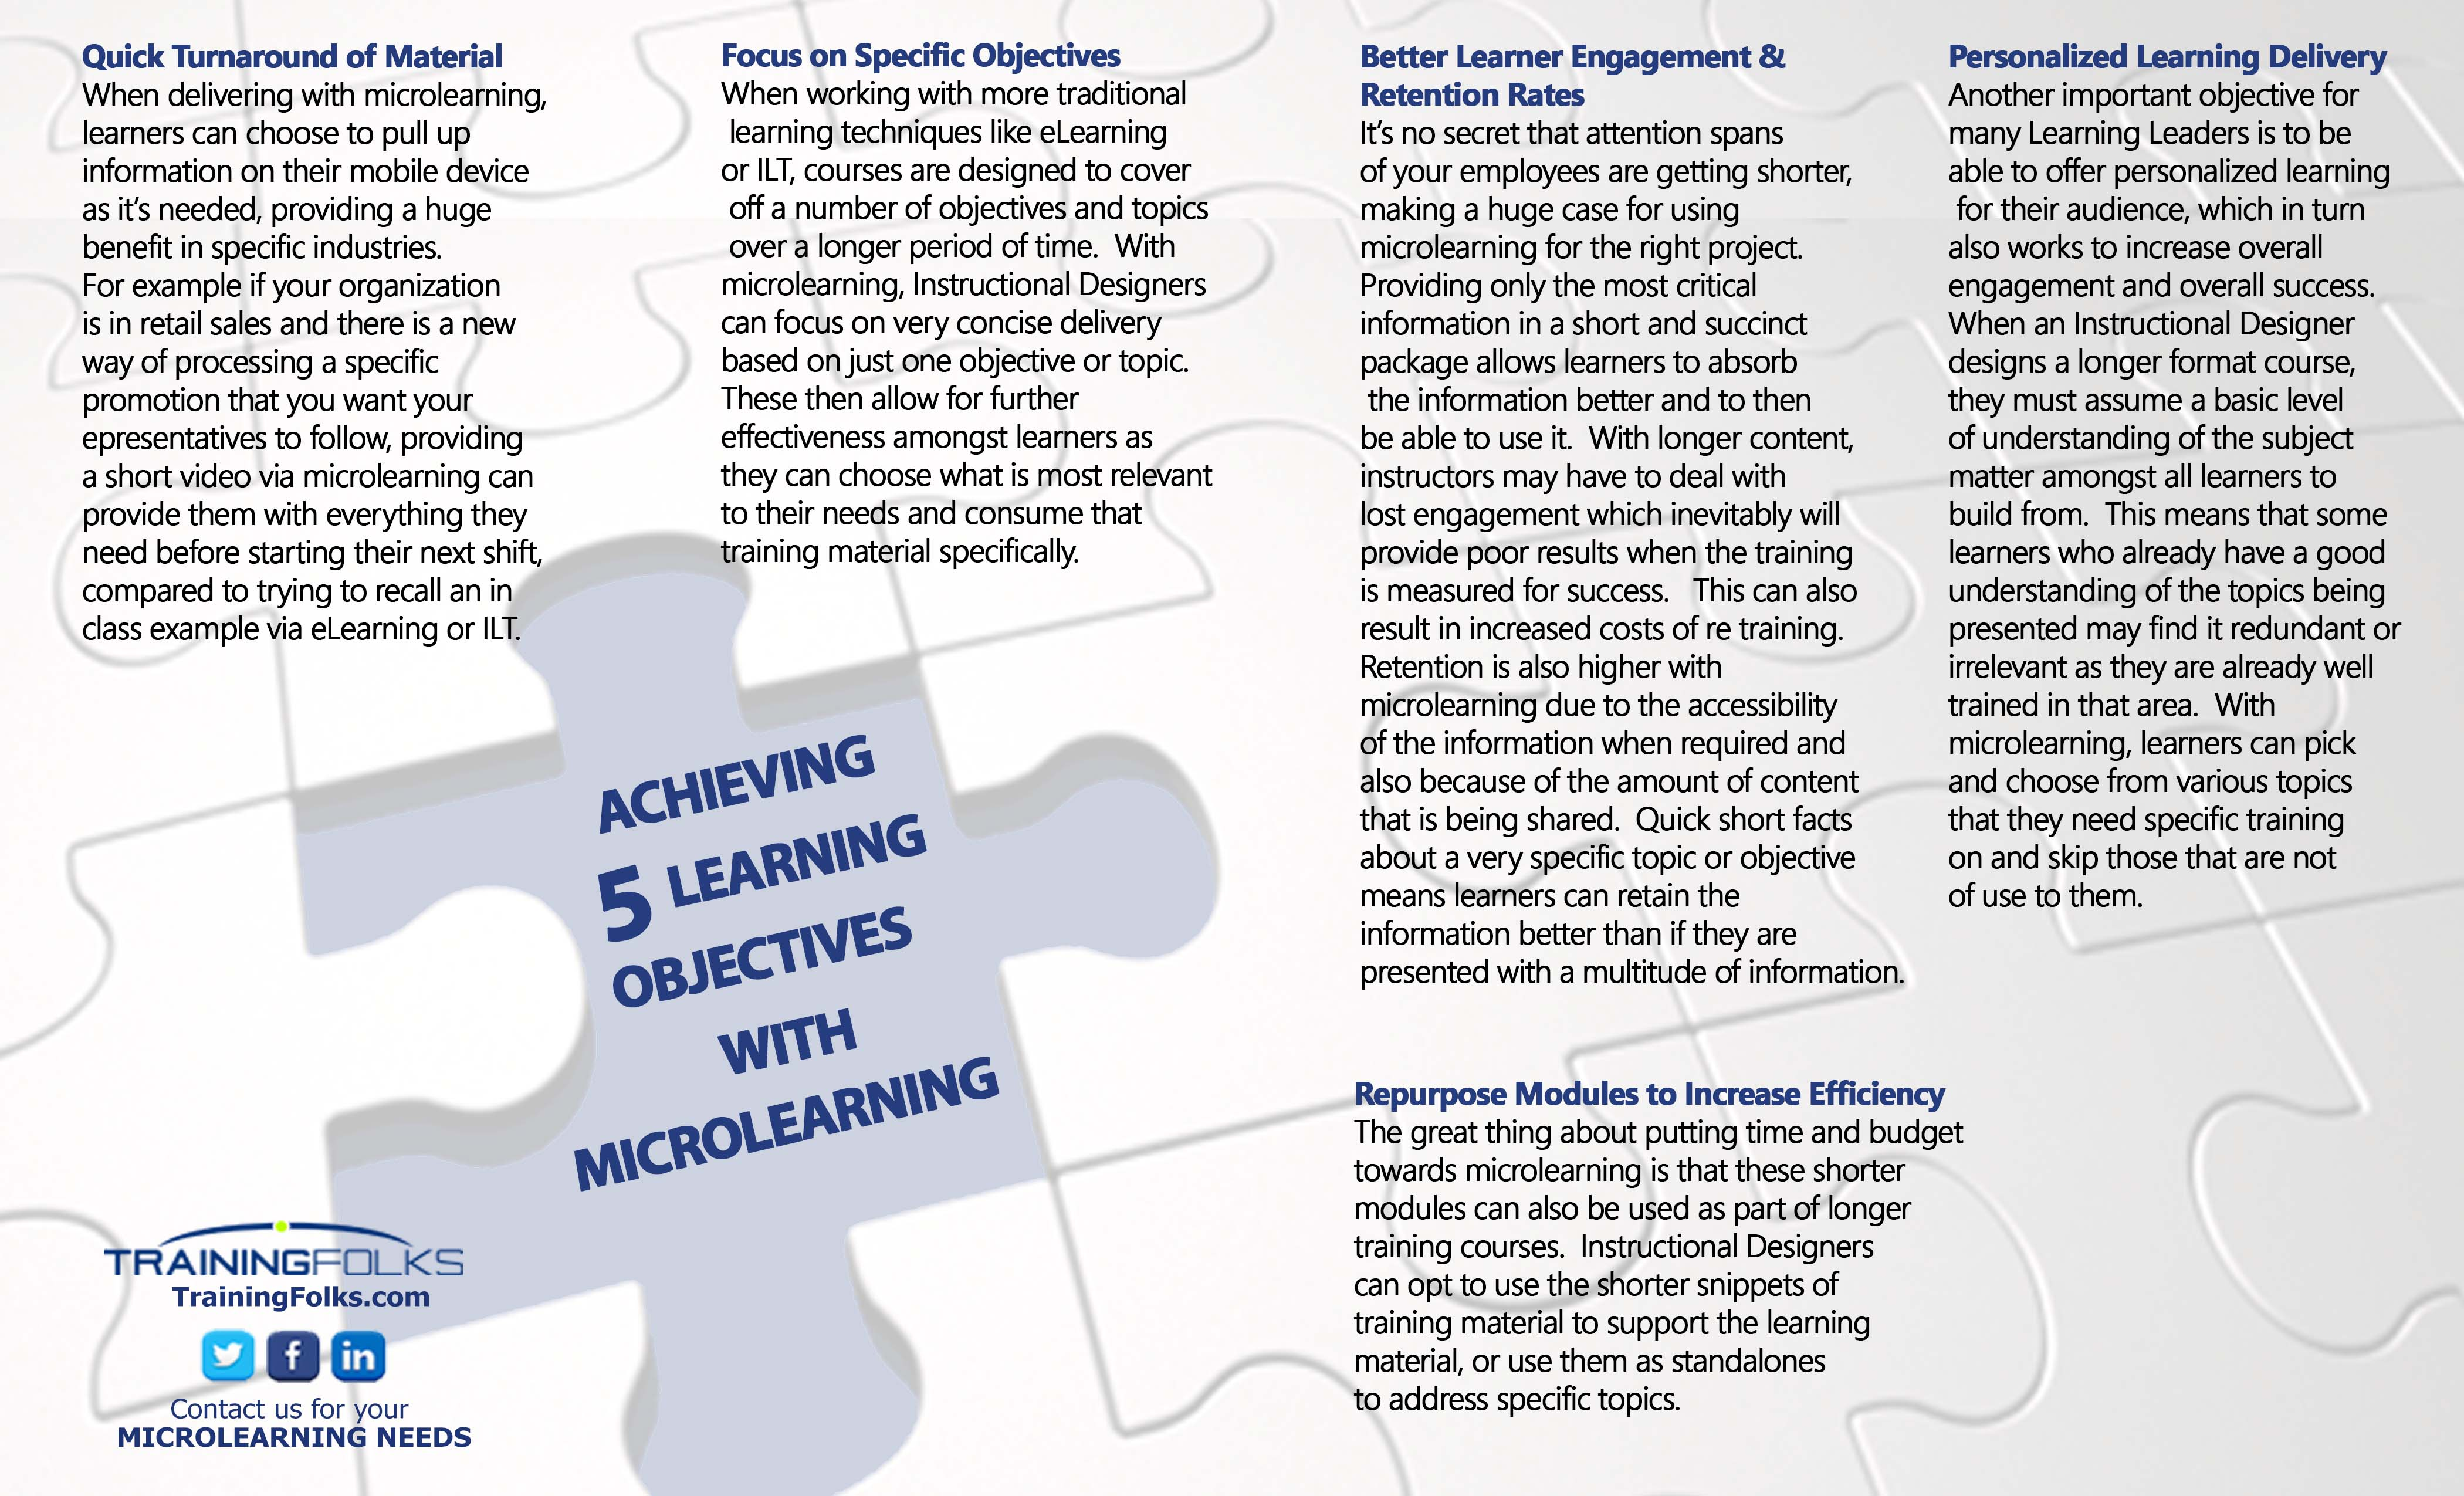 DownloadableContent_Meeting5LearningObjectivesWithMicroLearning.jpg